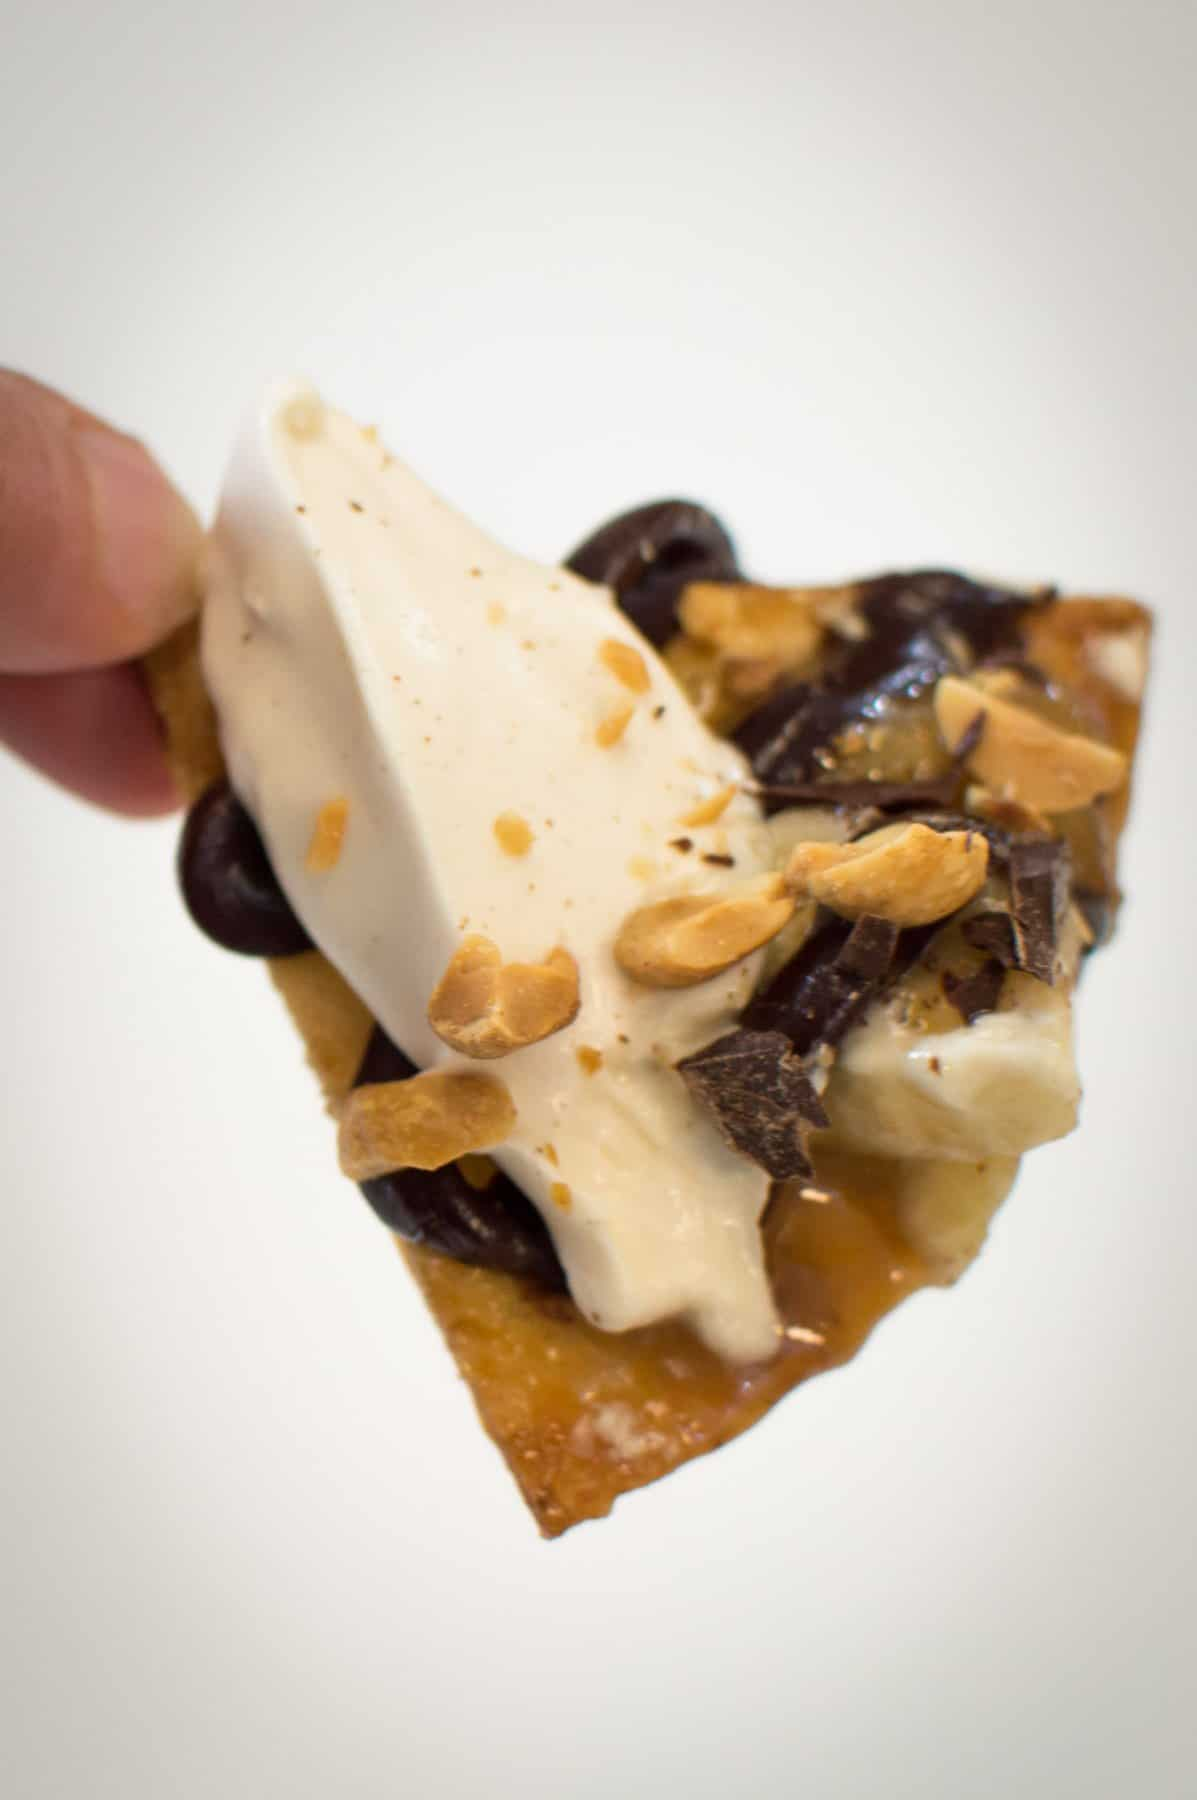 Chocolate Banana Dessert Nacho Chip